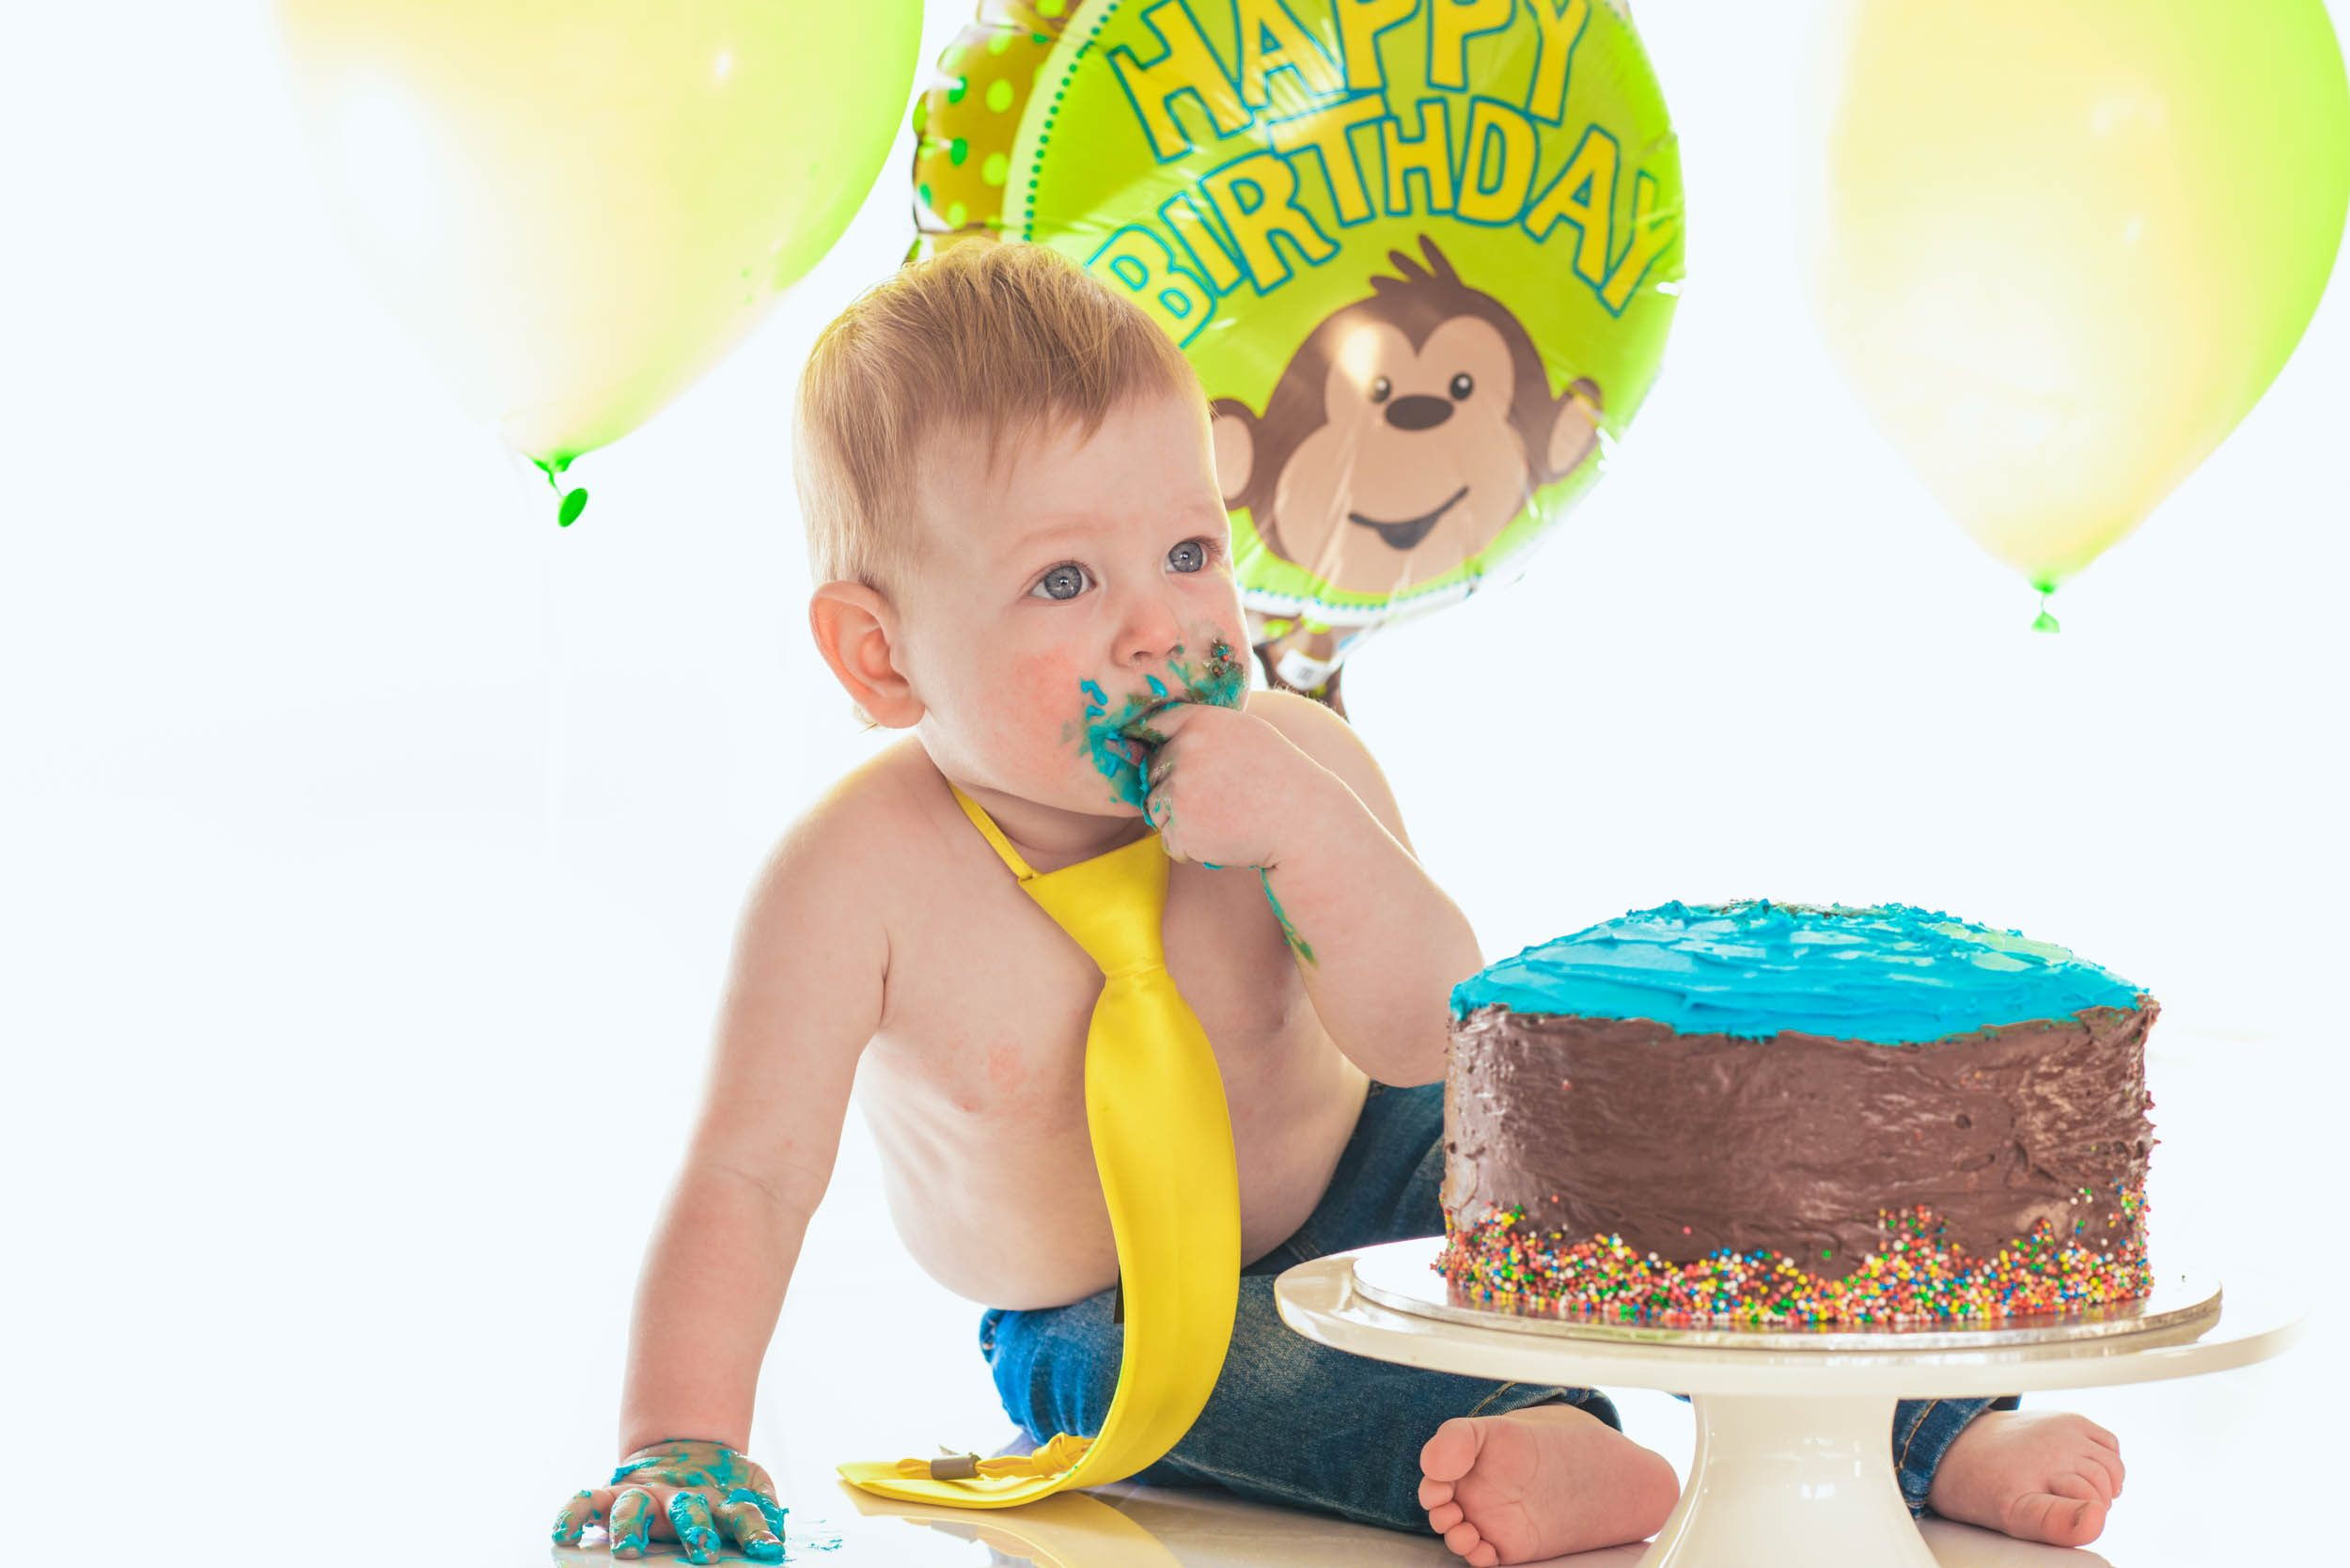 Cake all round as this baby starts the smash. Pause The Moment.